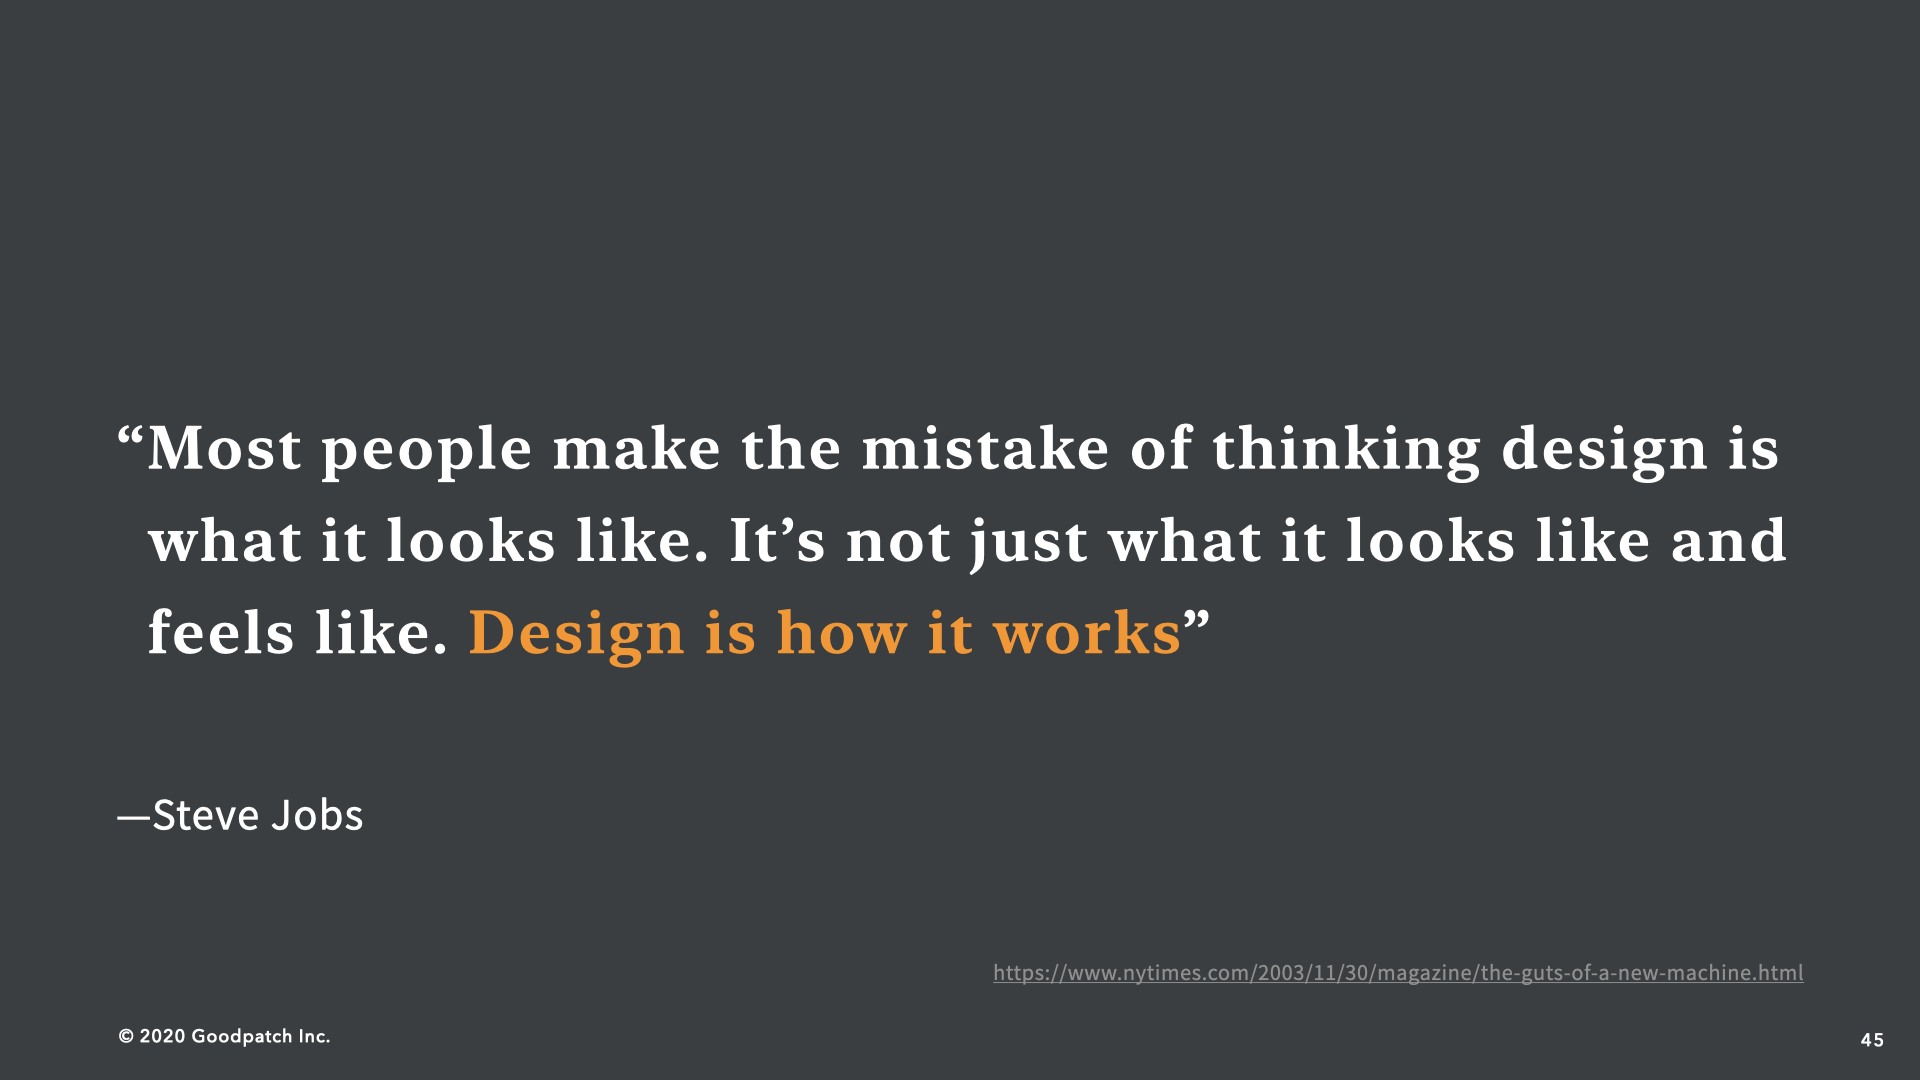 Desing is How It Works